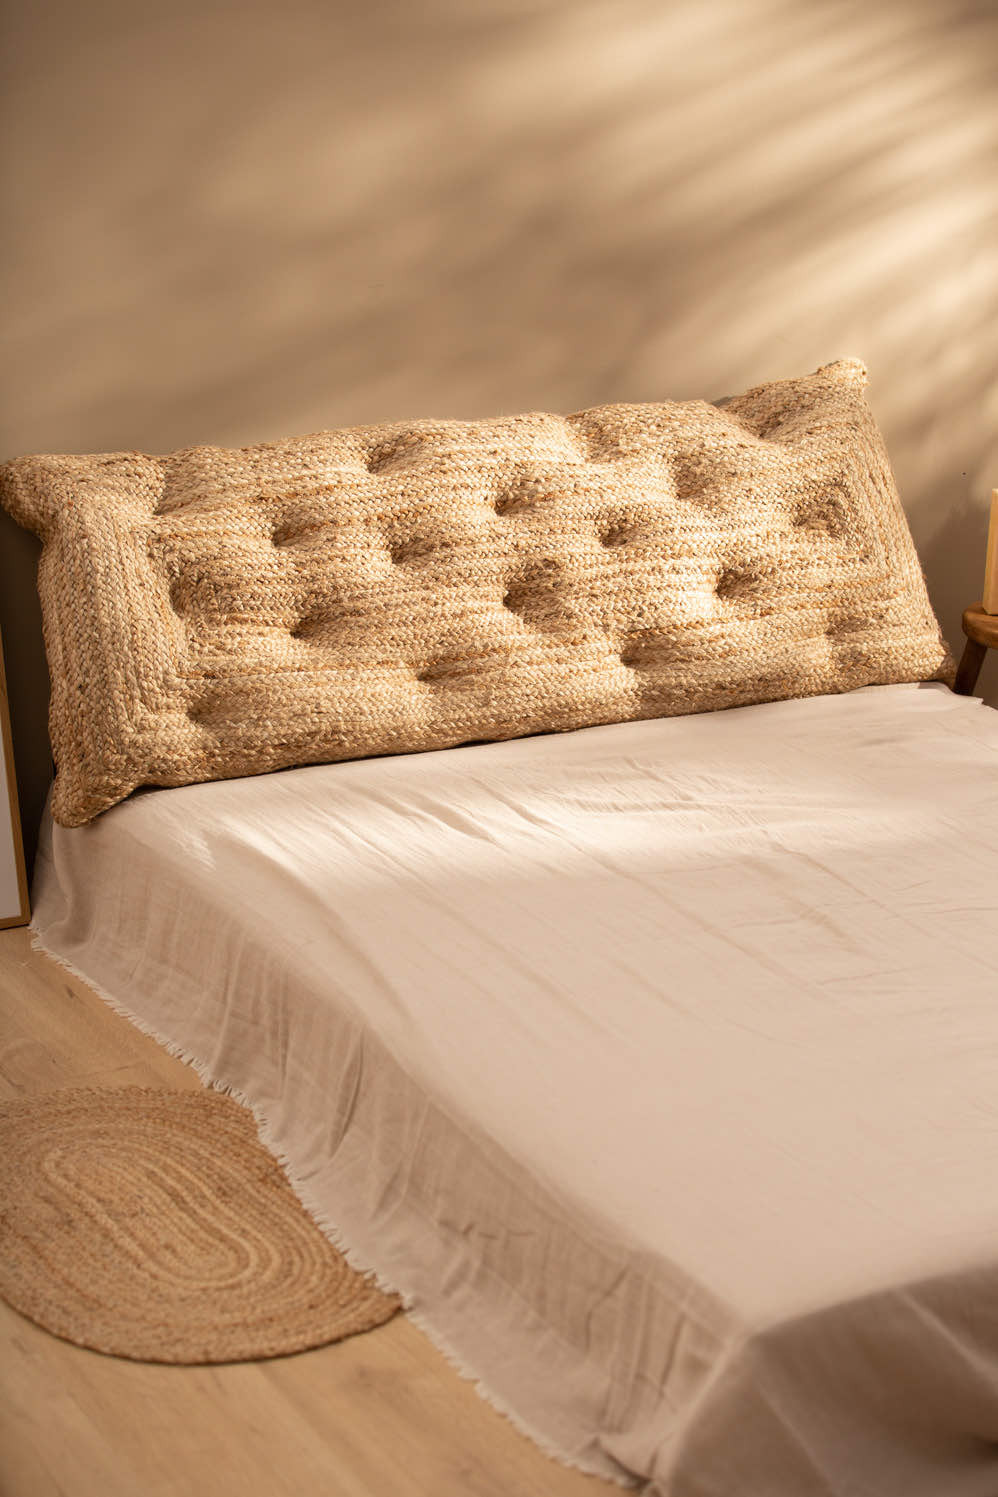 Single and double bed headboards